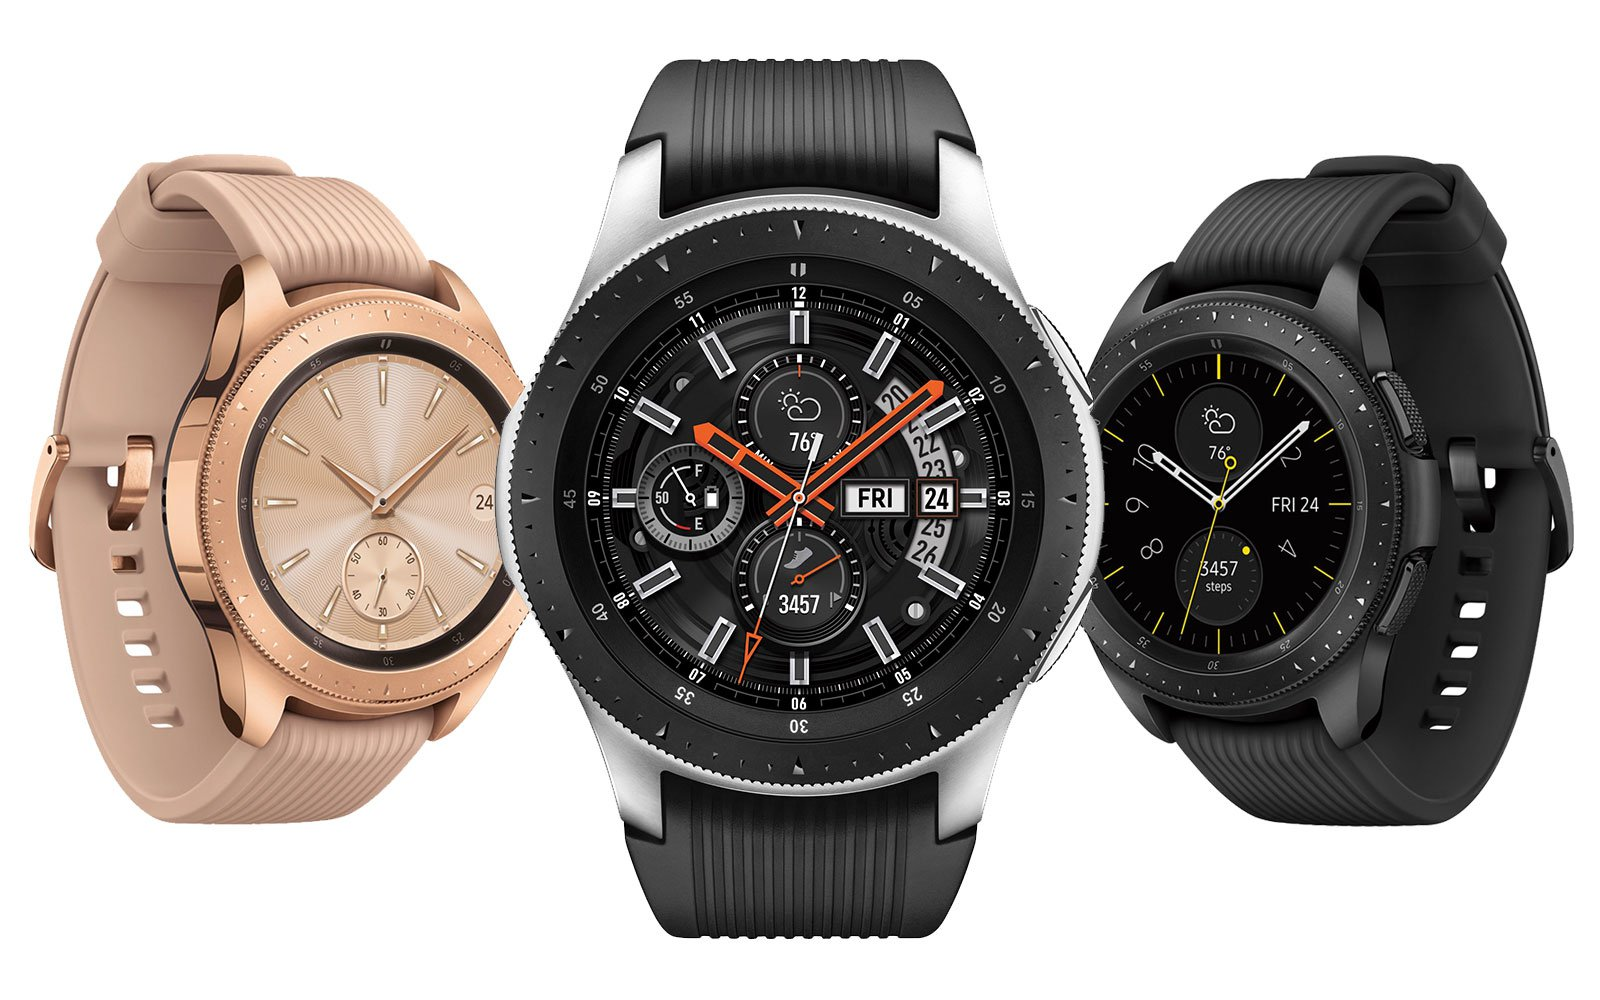 Samsung Galaxy Watch 4G Available From Vodafone UK